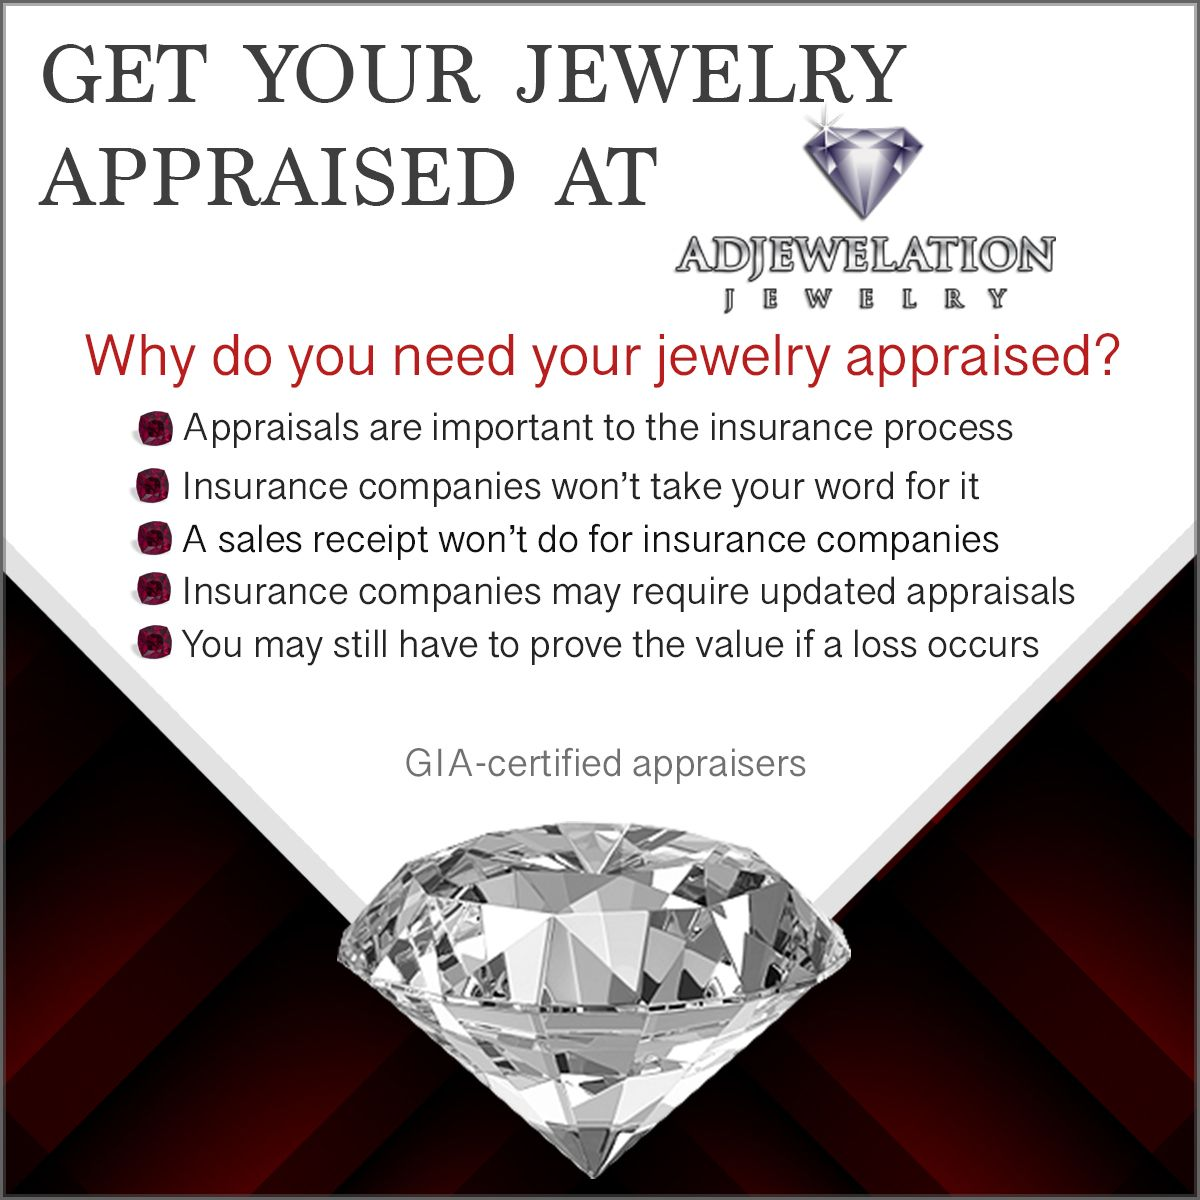 27+ Where do you go to get jewelry appraised ideas in 2021